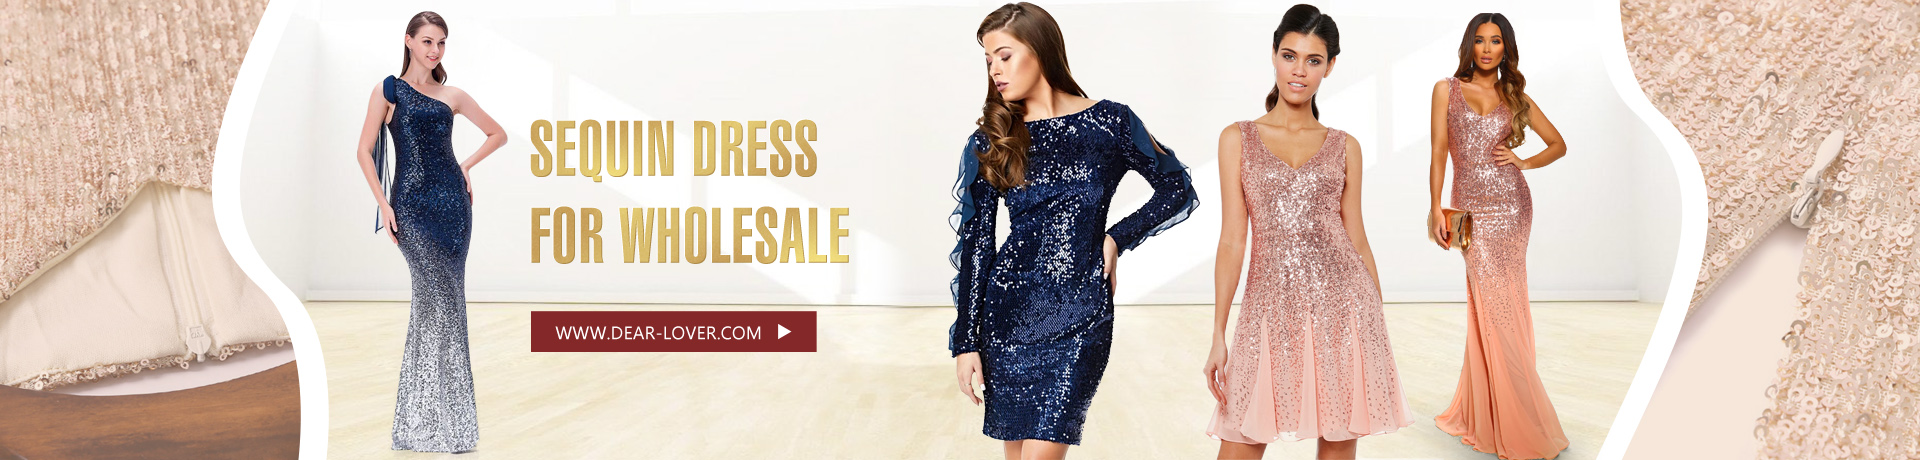 Wholesale Women's Clothing Online, Cheap Women's Clothes Sale